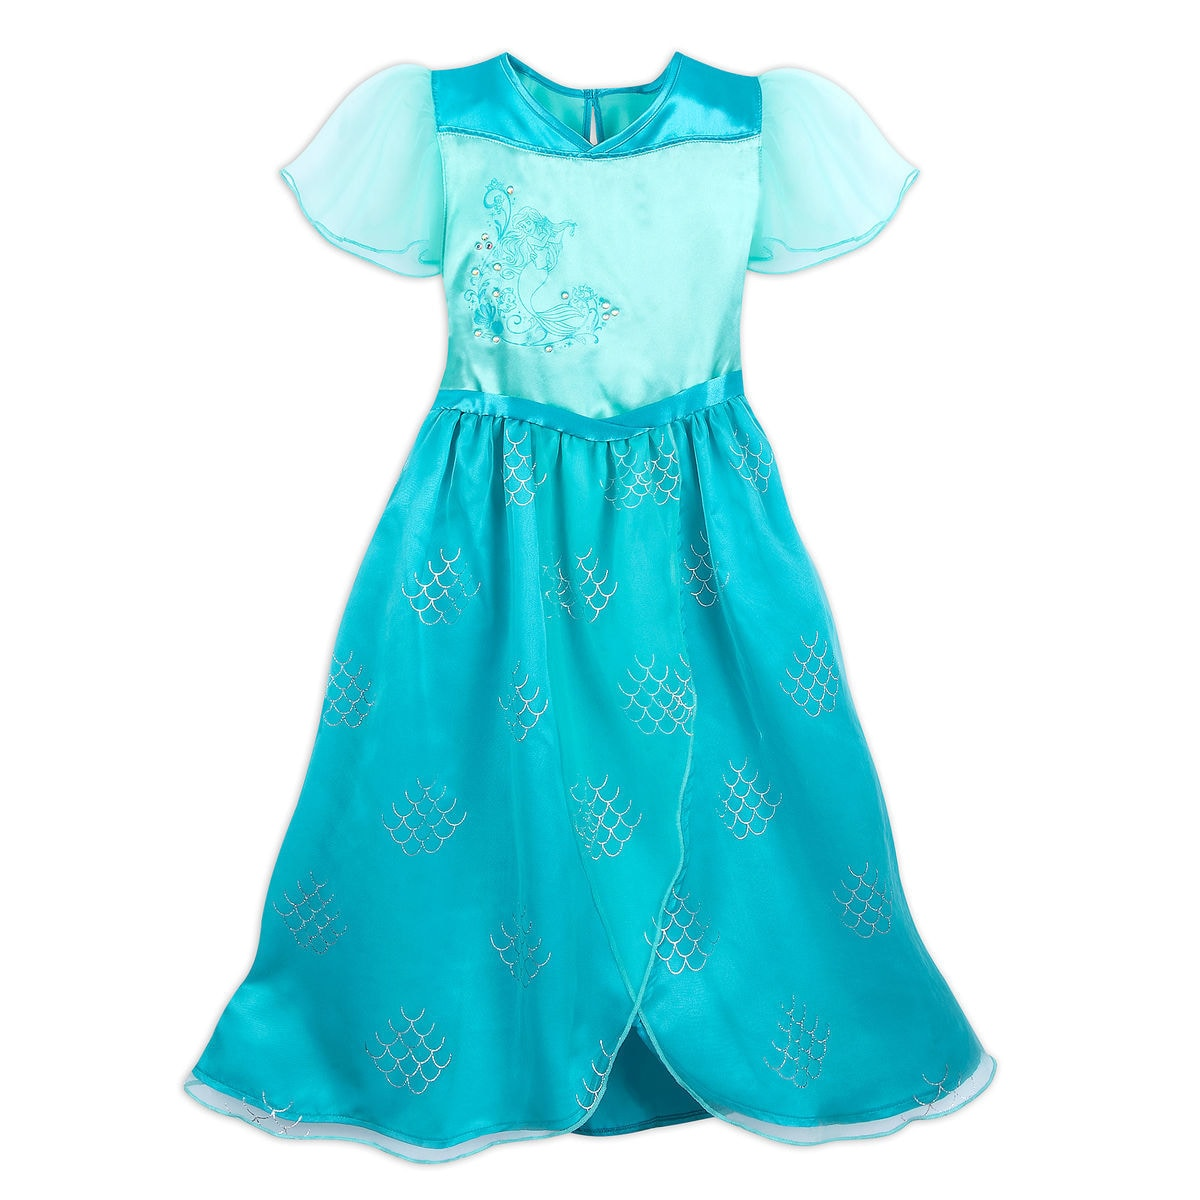 Ariel Sleep Gown for Girls | shopDisney